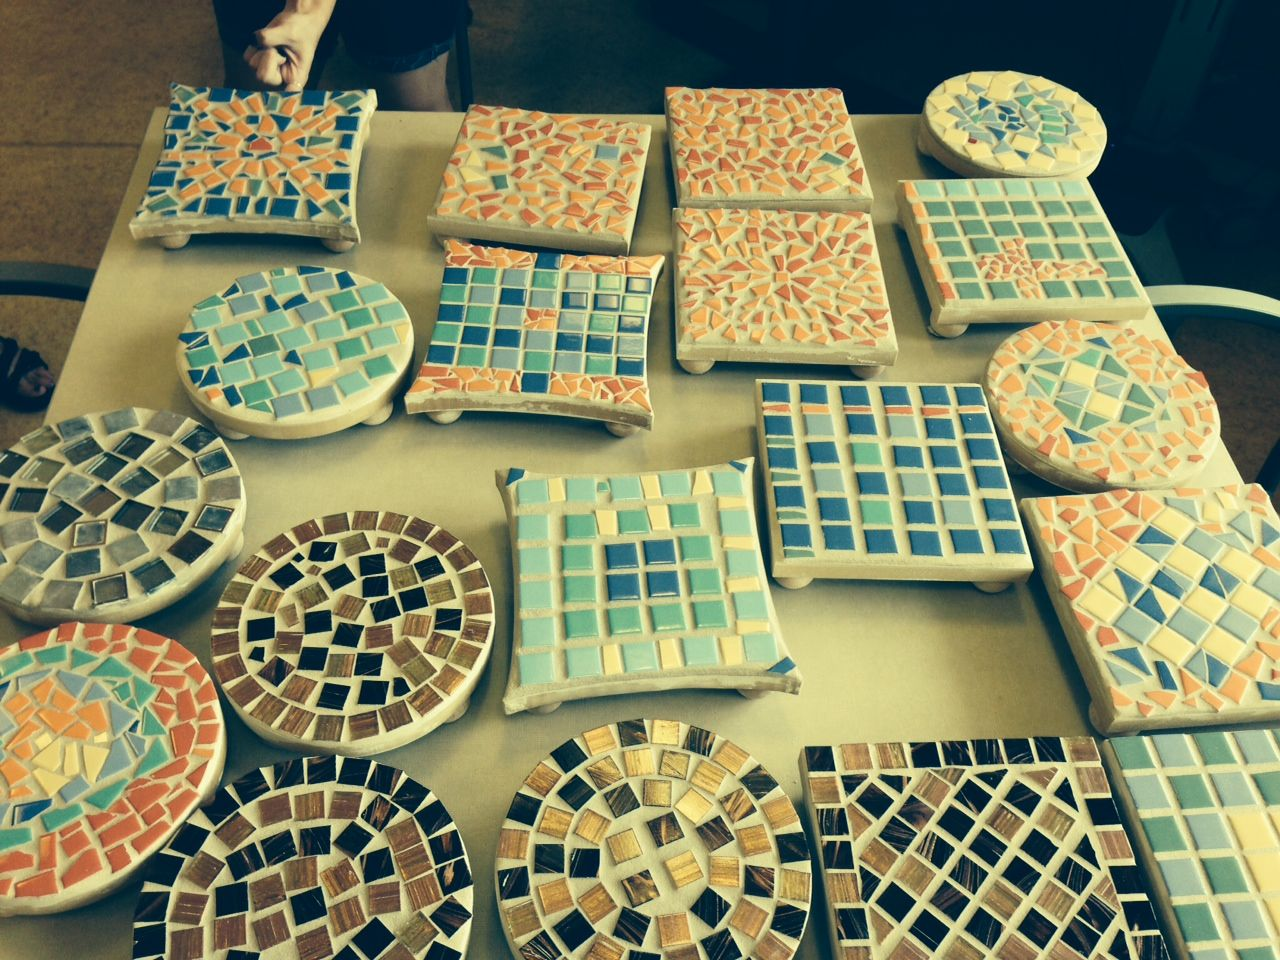 Tile Mosaic Trivets This Project Was Fun For Seniors And